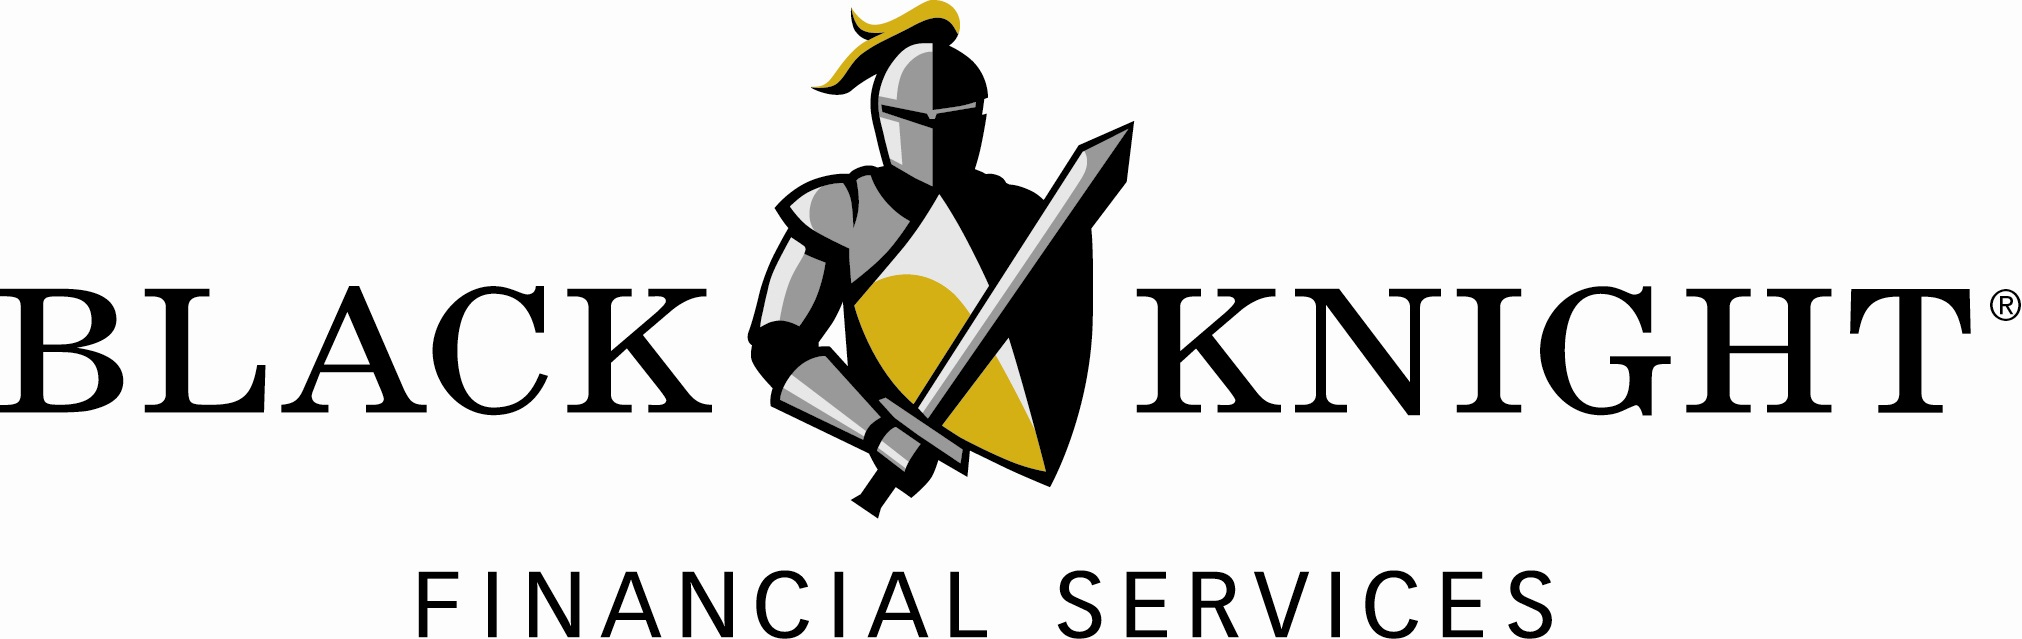 Black Knight Financial Services Announces Second Quarter 2017 Earnings Release and Conference Call